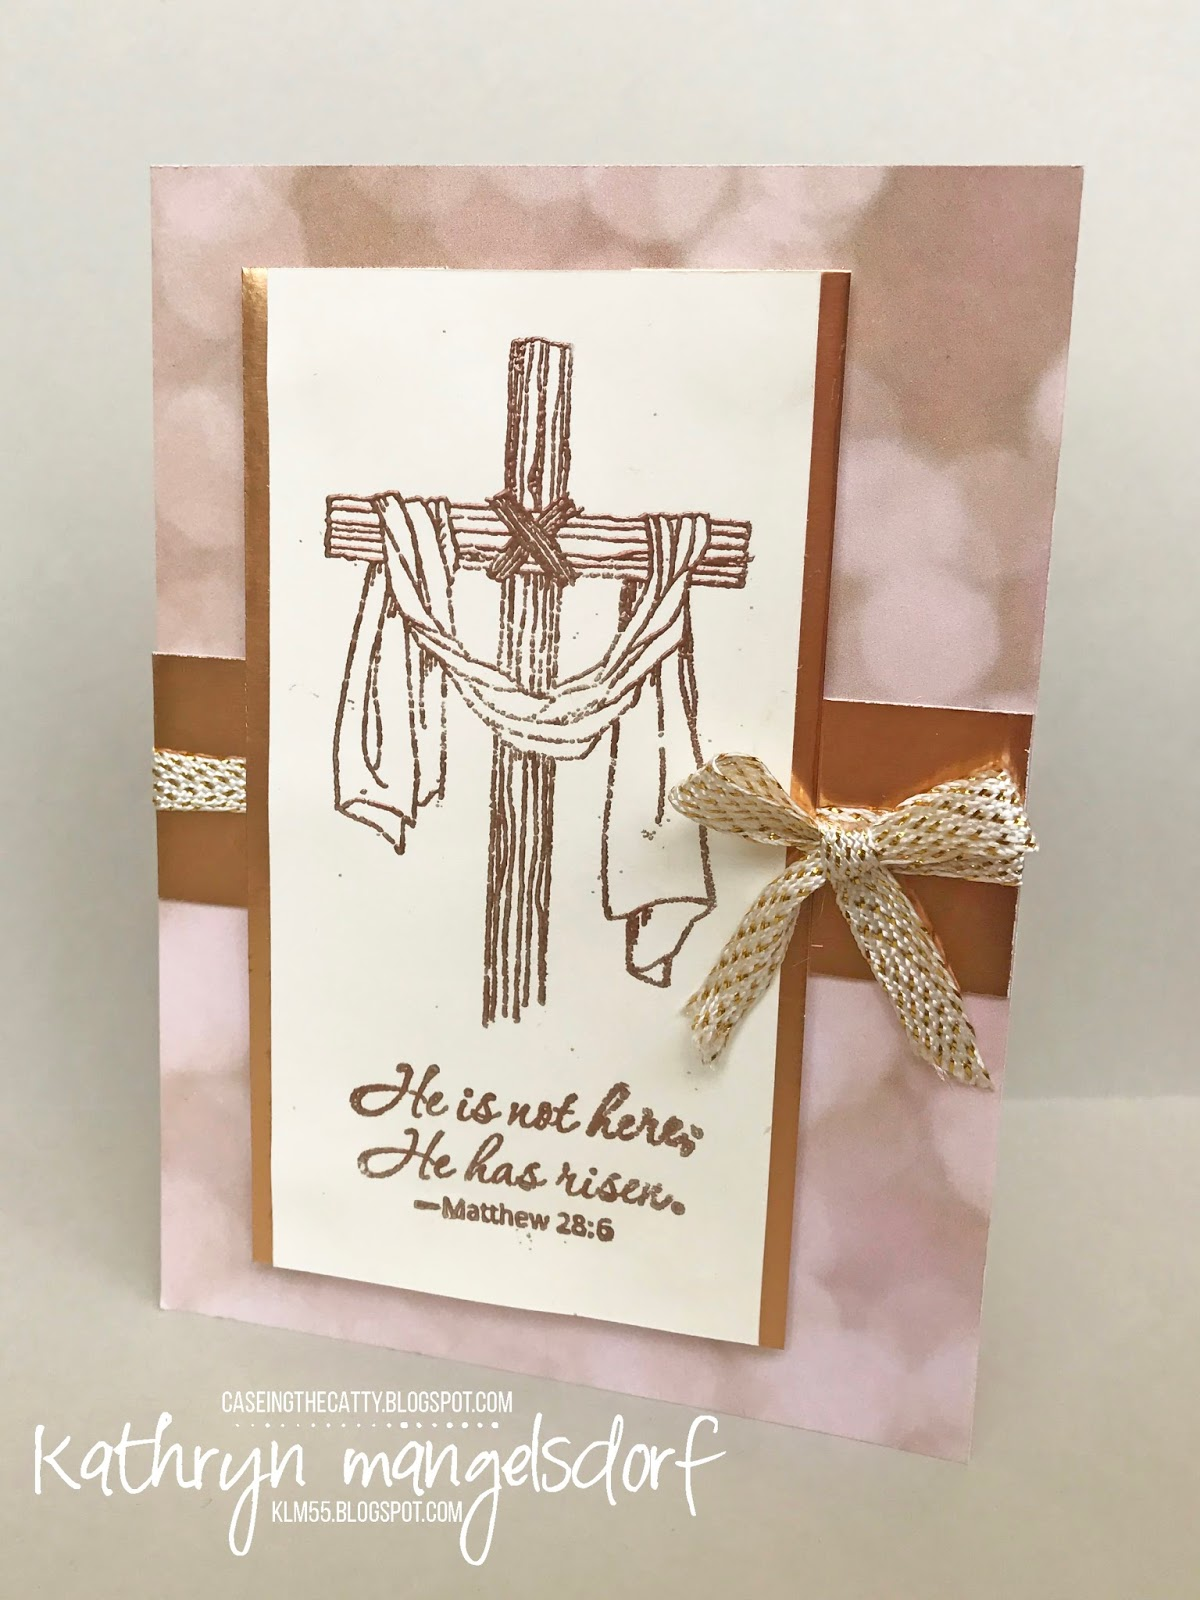 Kathryn's Stampin' World: CASE-ing the Catty Easter ...